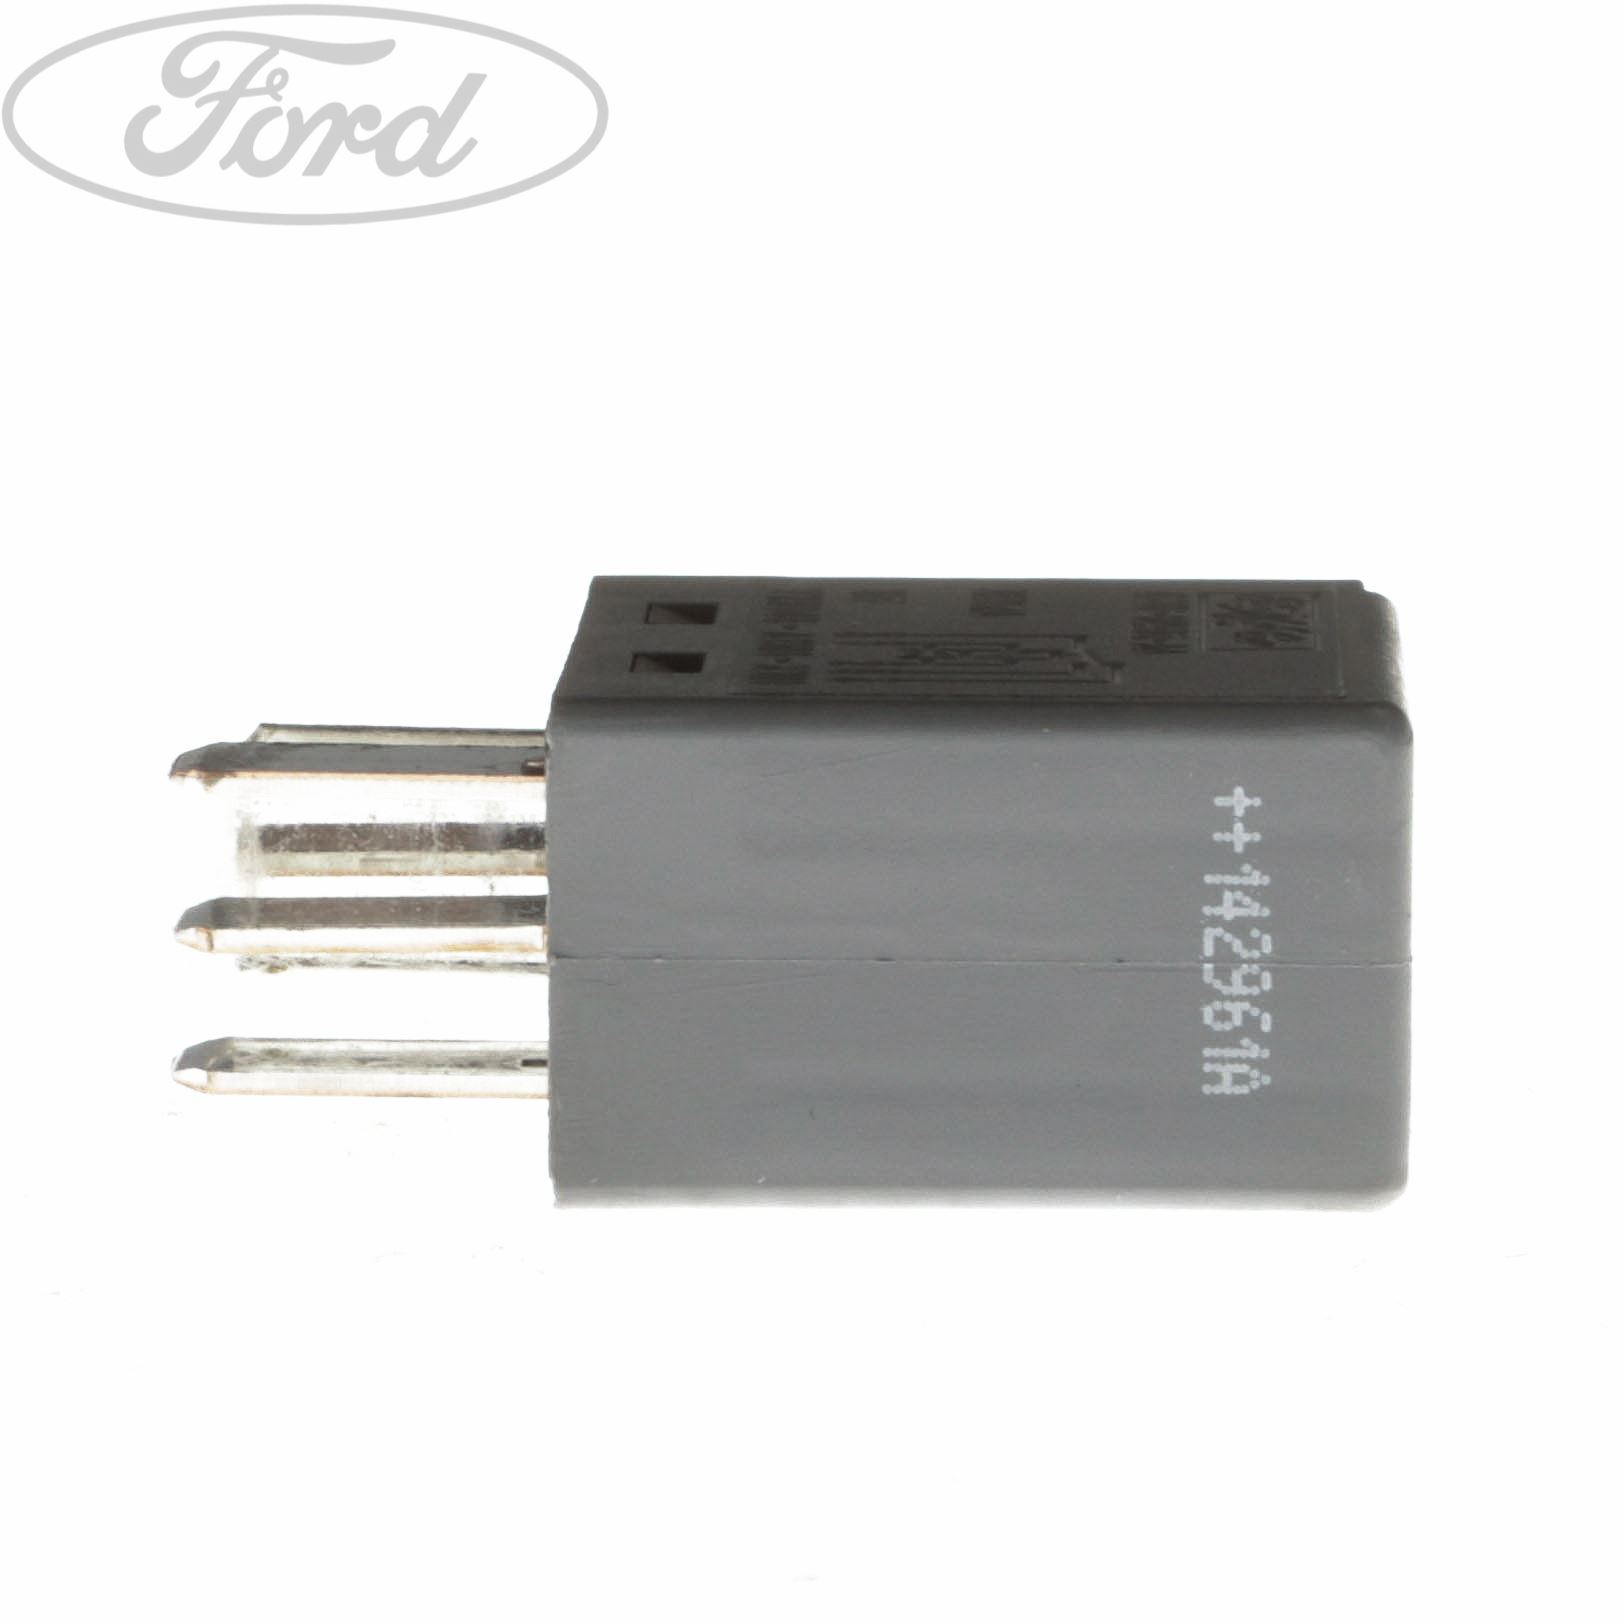 hight resolution of details about genuine ford focus mk1 front rear windscreen wiper relay 1552133